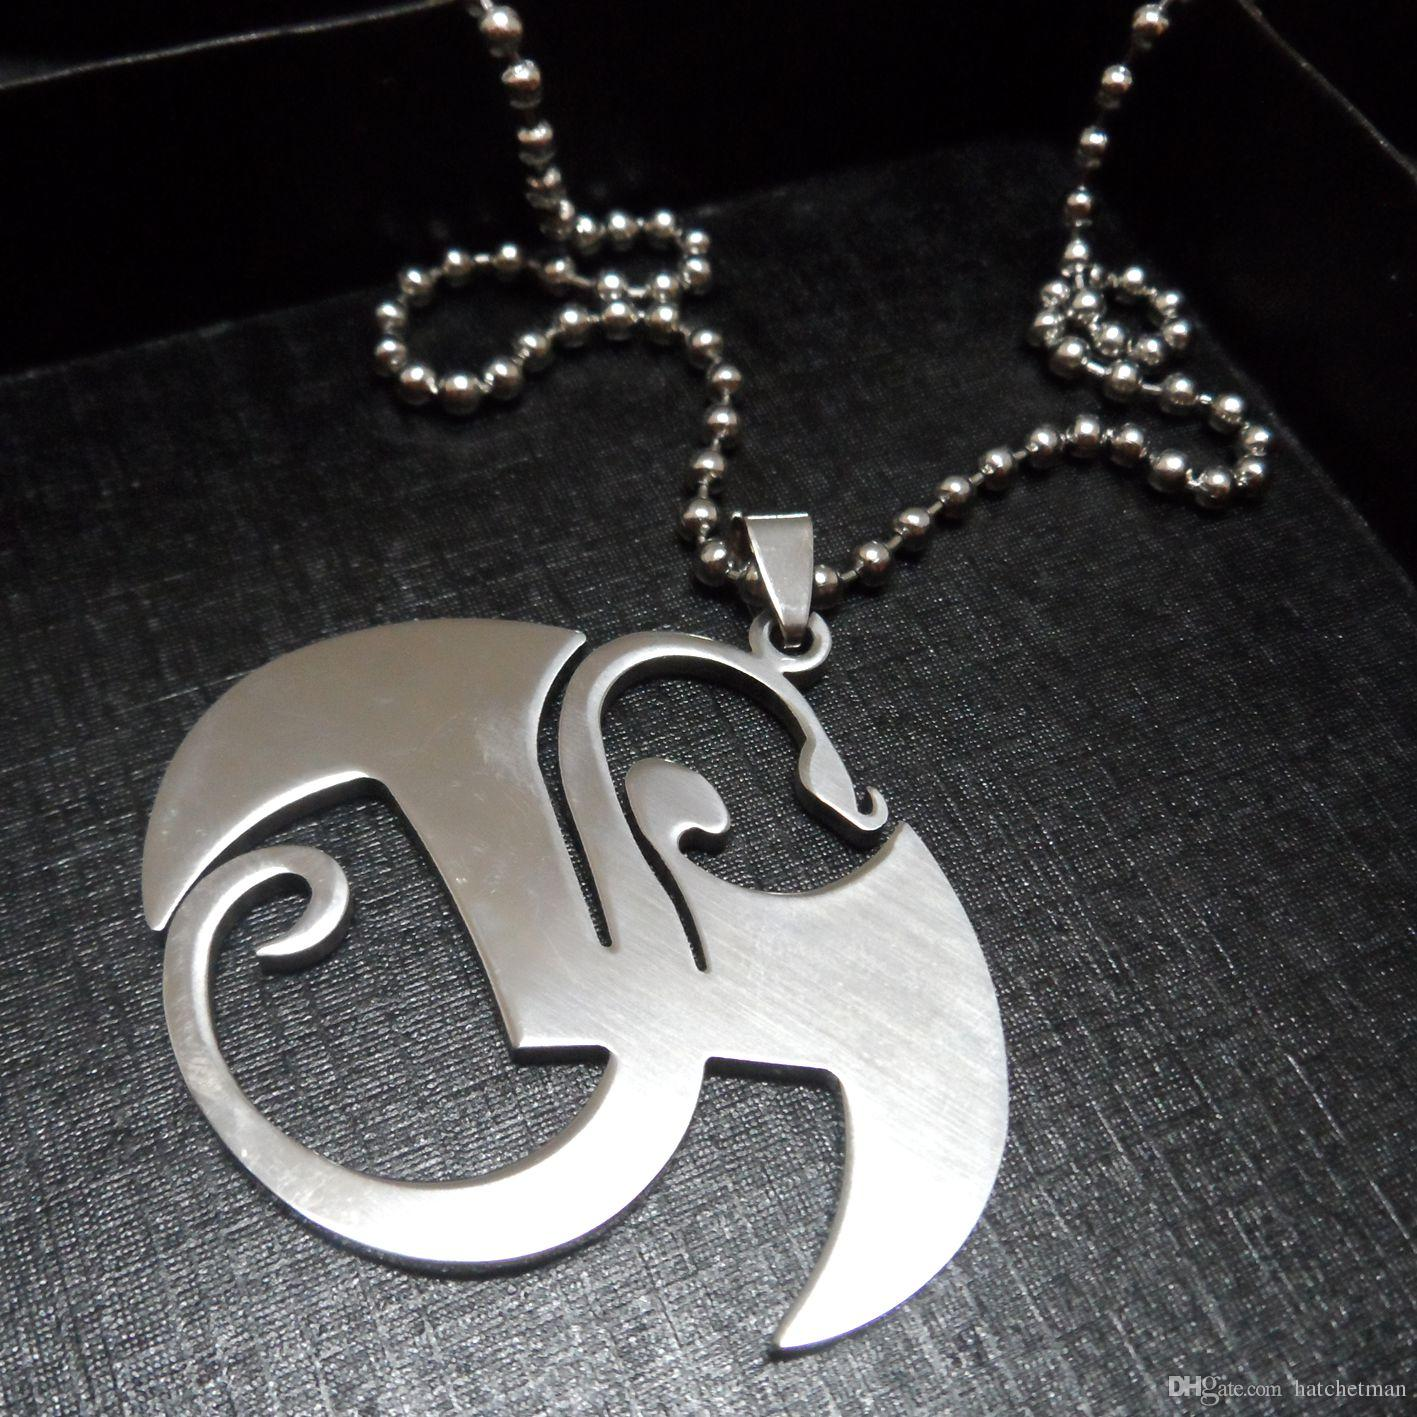 Wholesale large strange music charms stainless steel pendant wholesale large strange music charms stainless steel pendant necklace silver men jewelry garnet pendant necklace aquamarine pendant necklace from mozeypictures Choice Image